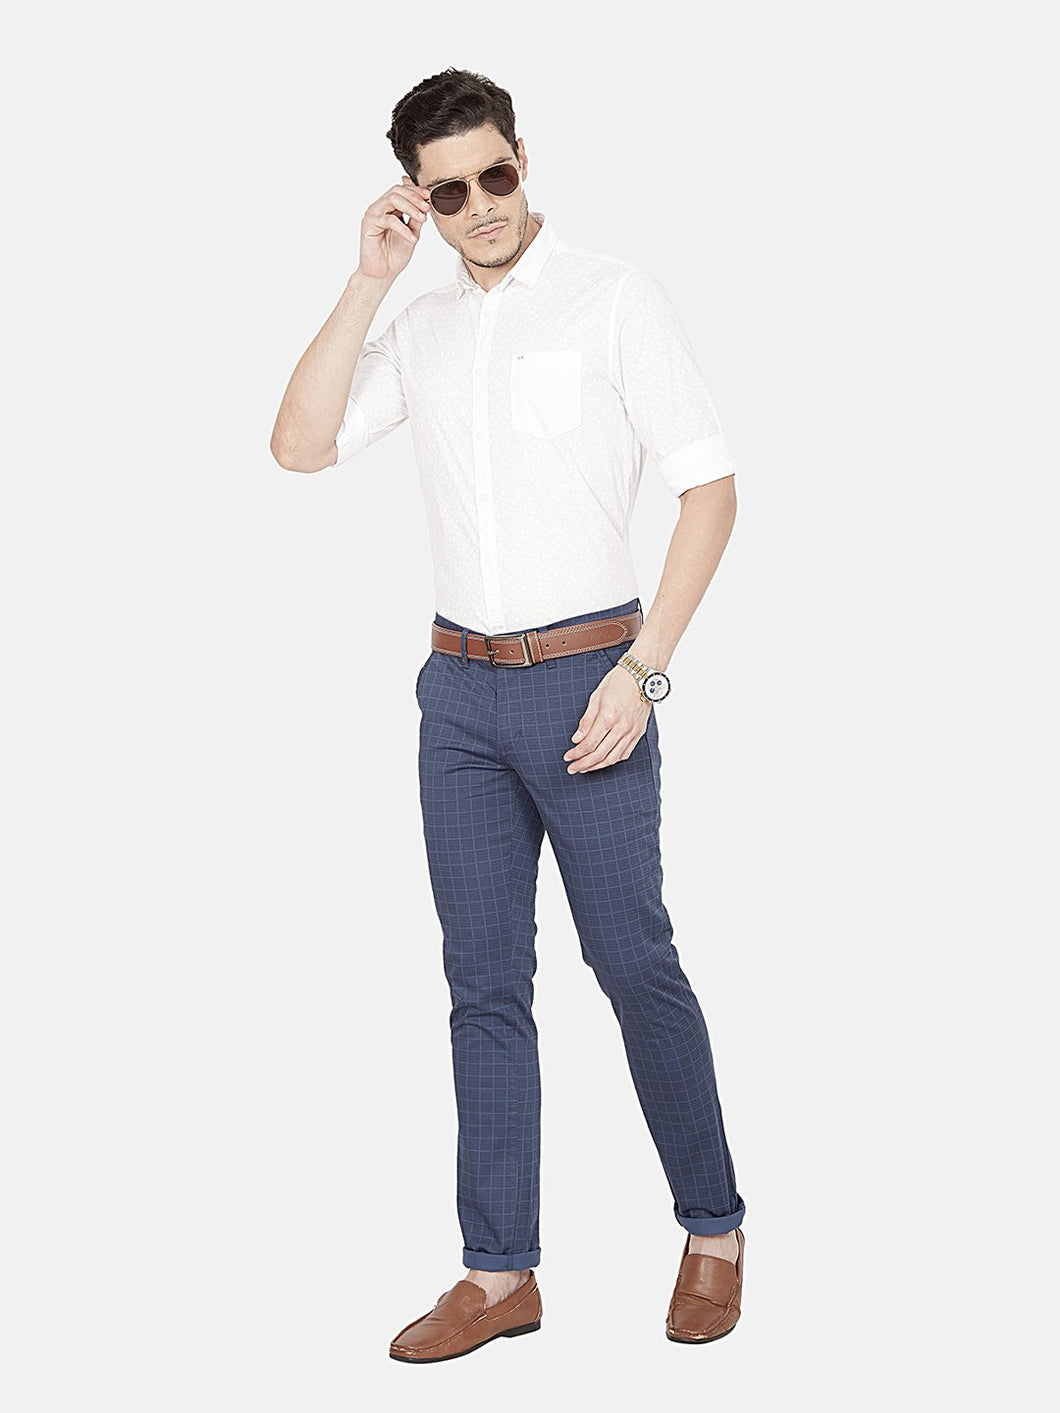 Men's Stretchable Slim-fit Printed Casual Trousers-MJ851Dark_Blue